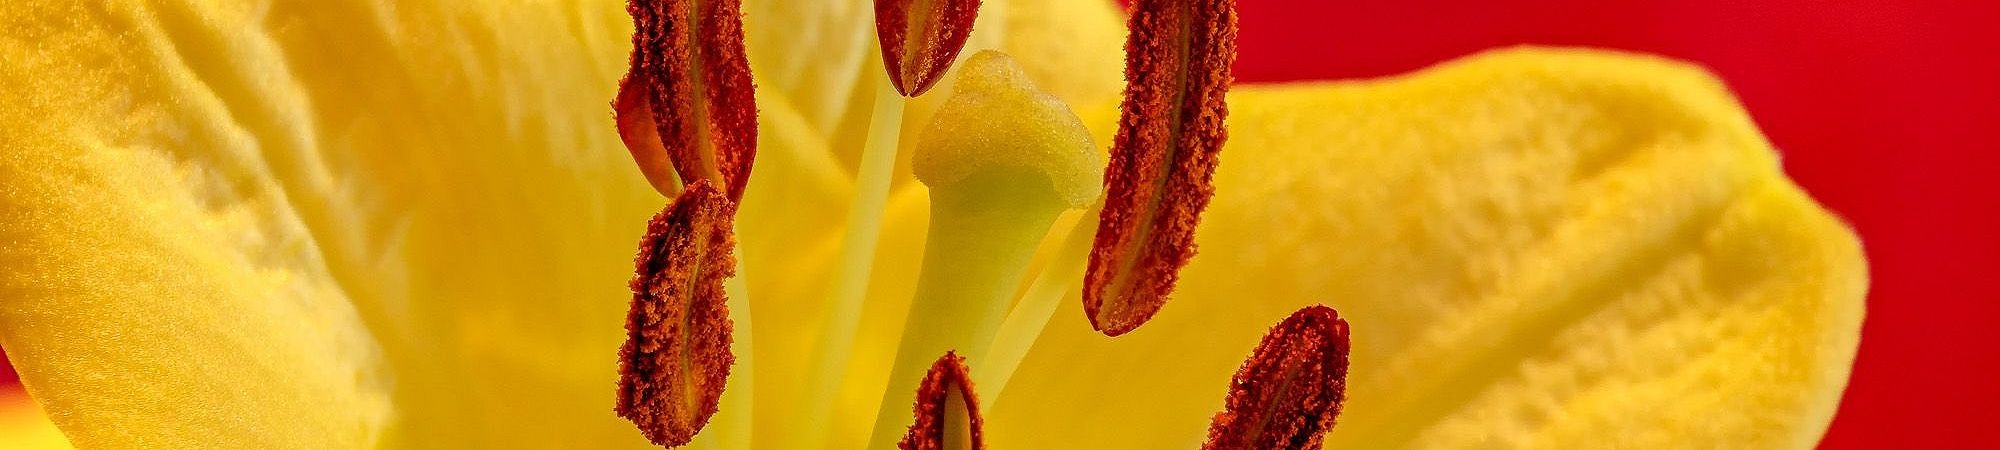 Macro in Red and Yellow photography